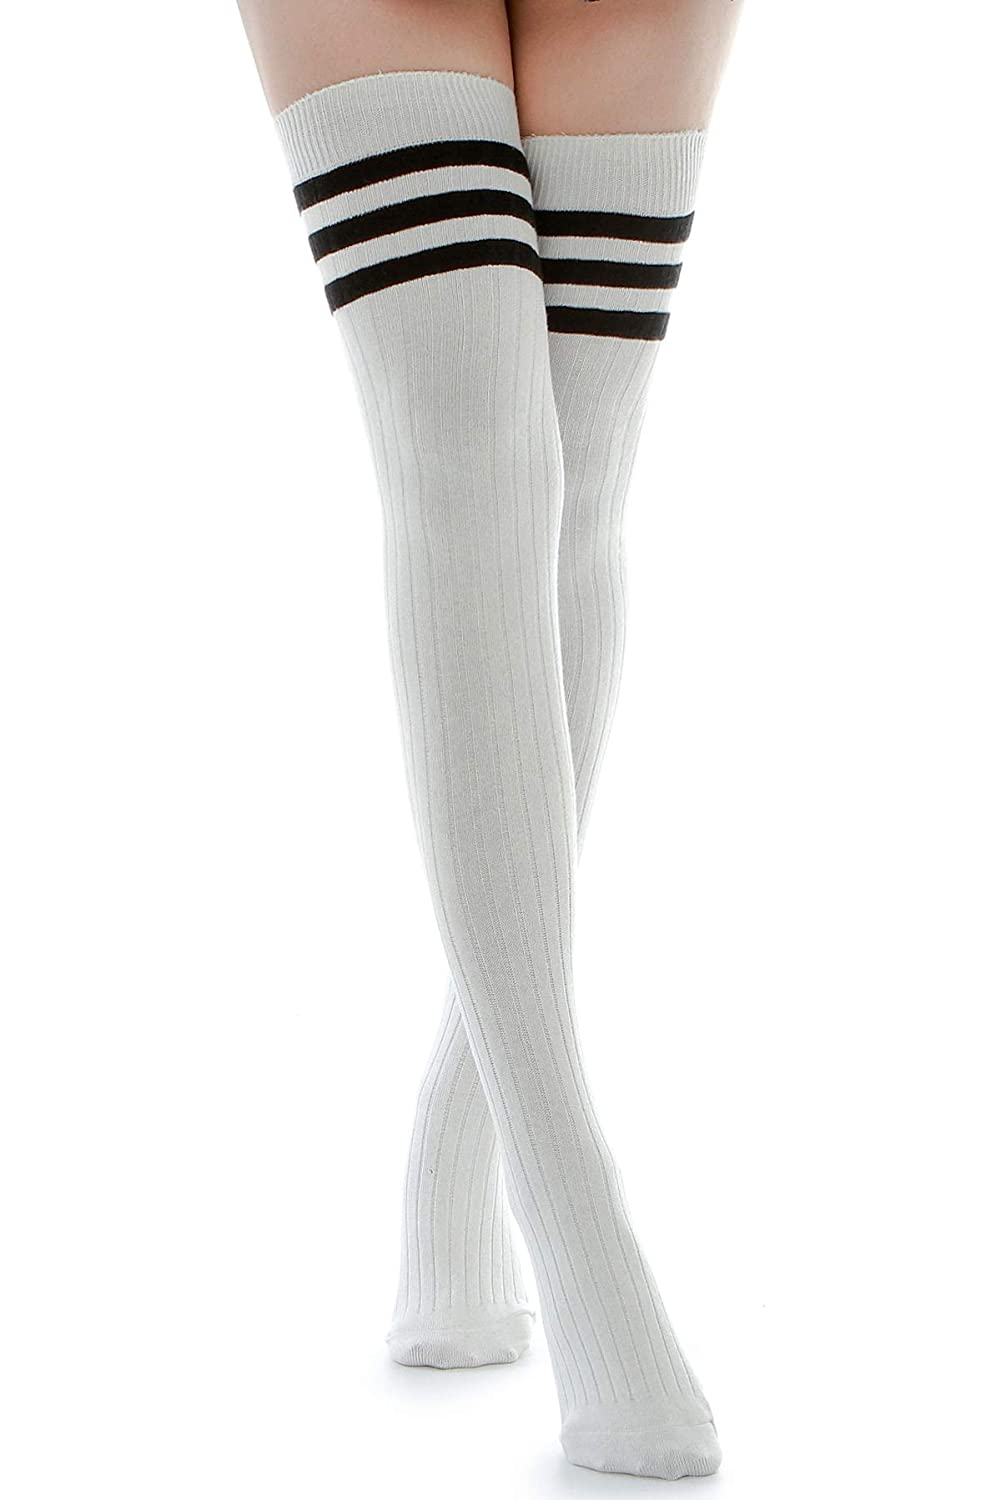 de6f206d0 Kayhoma Extra Long Cotton Mid Thigh High Socks Over the Knee High Boot  Stockings Cotton Leg